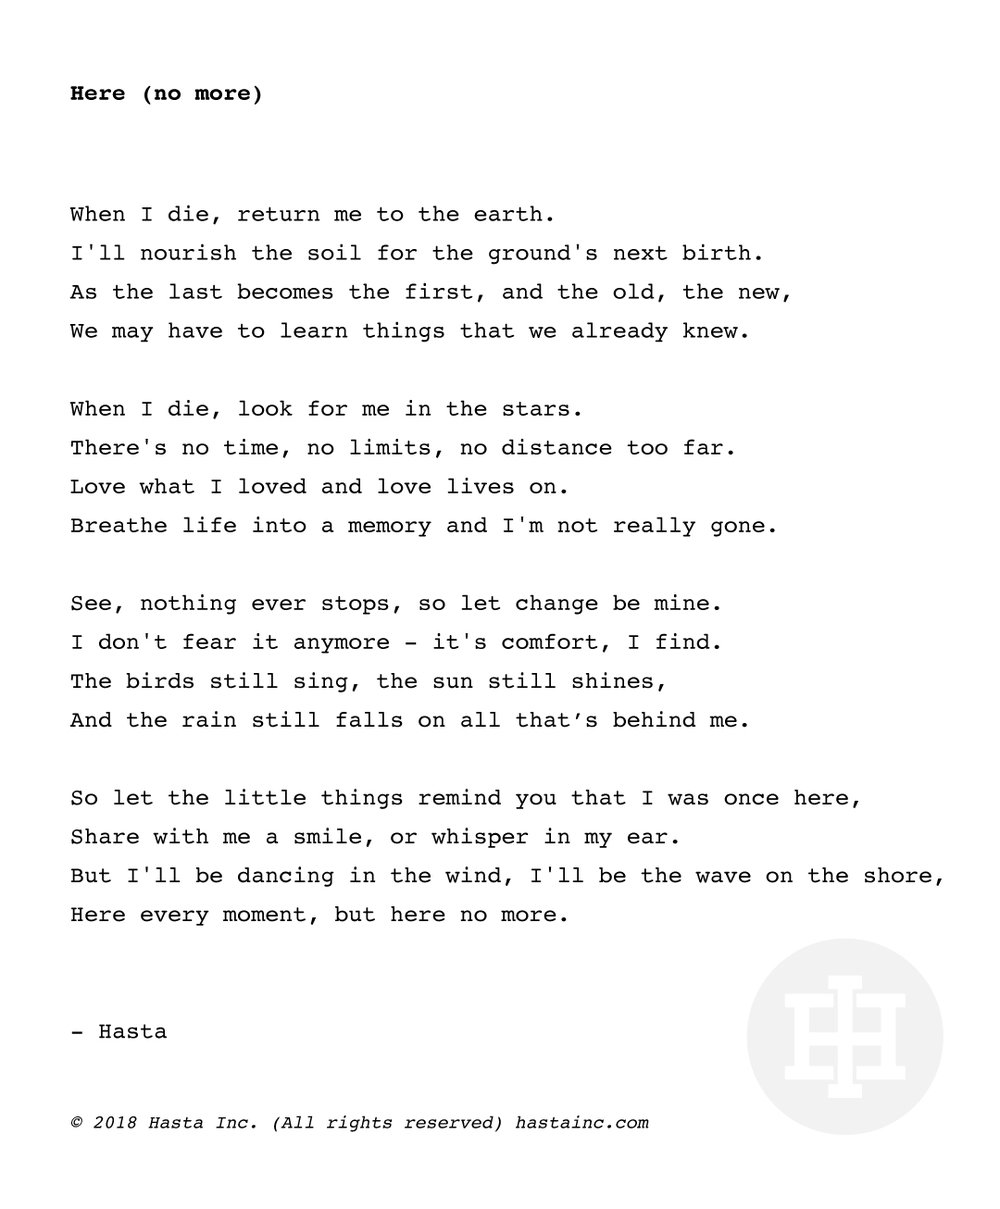 Here-No-More-Poem-All-rights-reserved-2018-Hasta-Inc.jpg